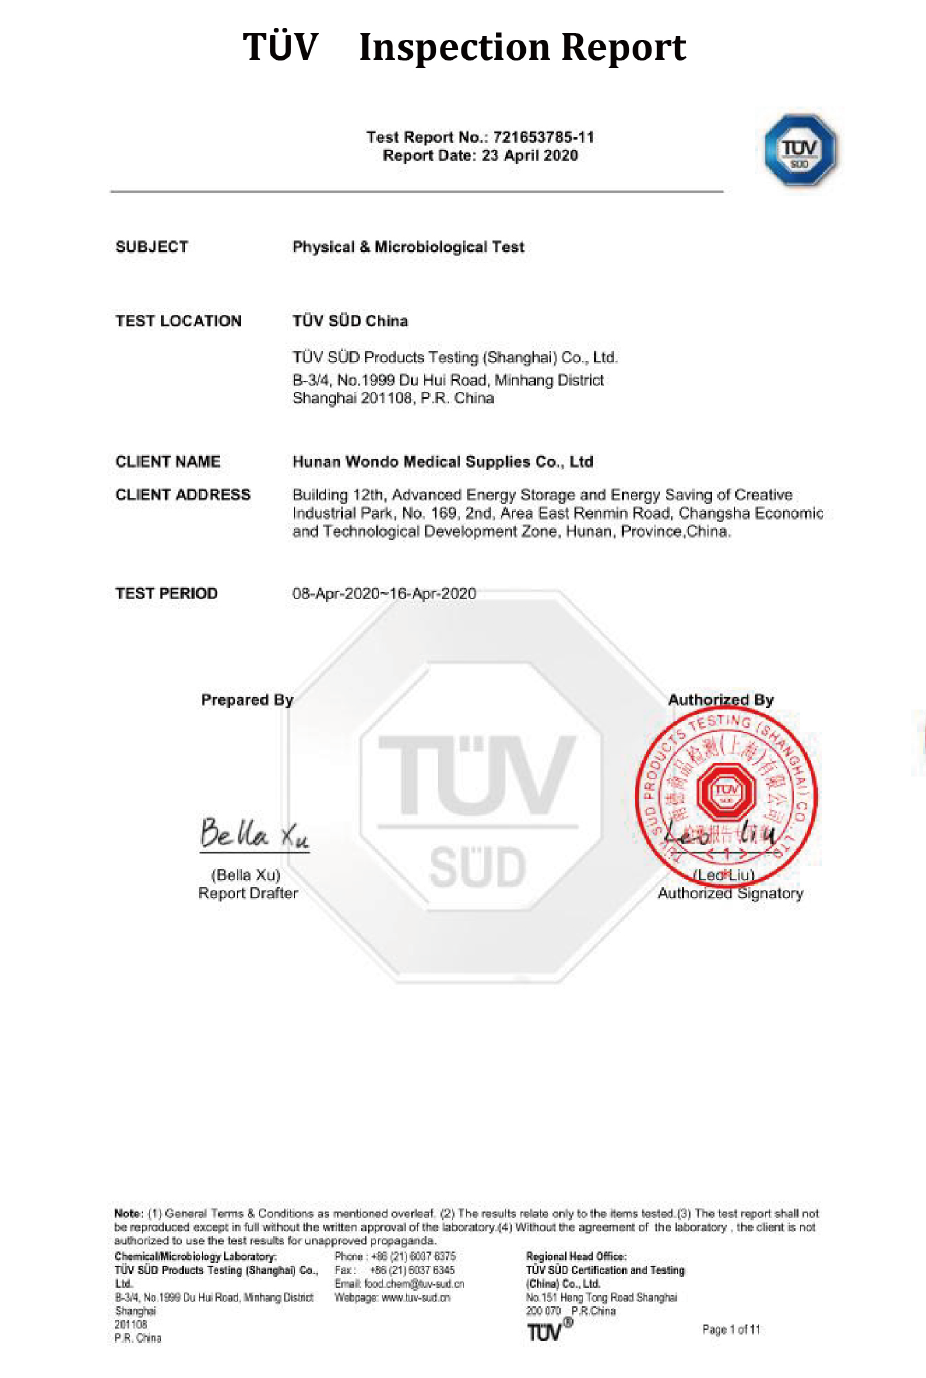 tuv-iir-inspection-report.png